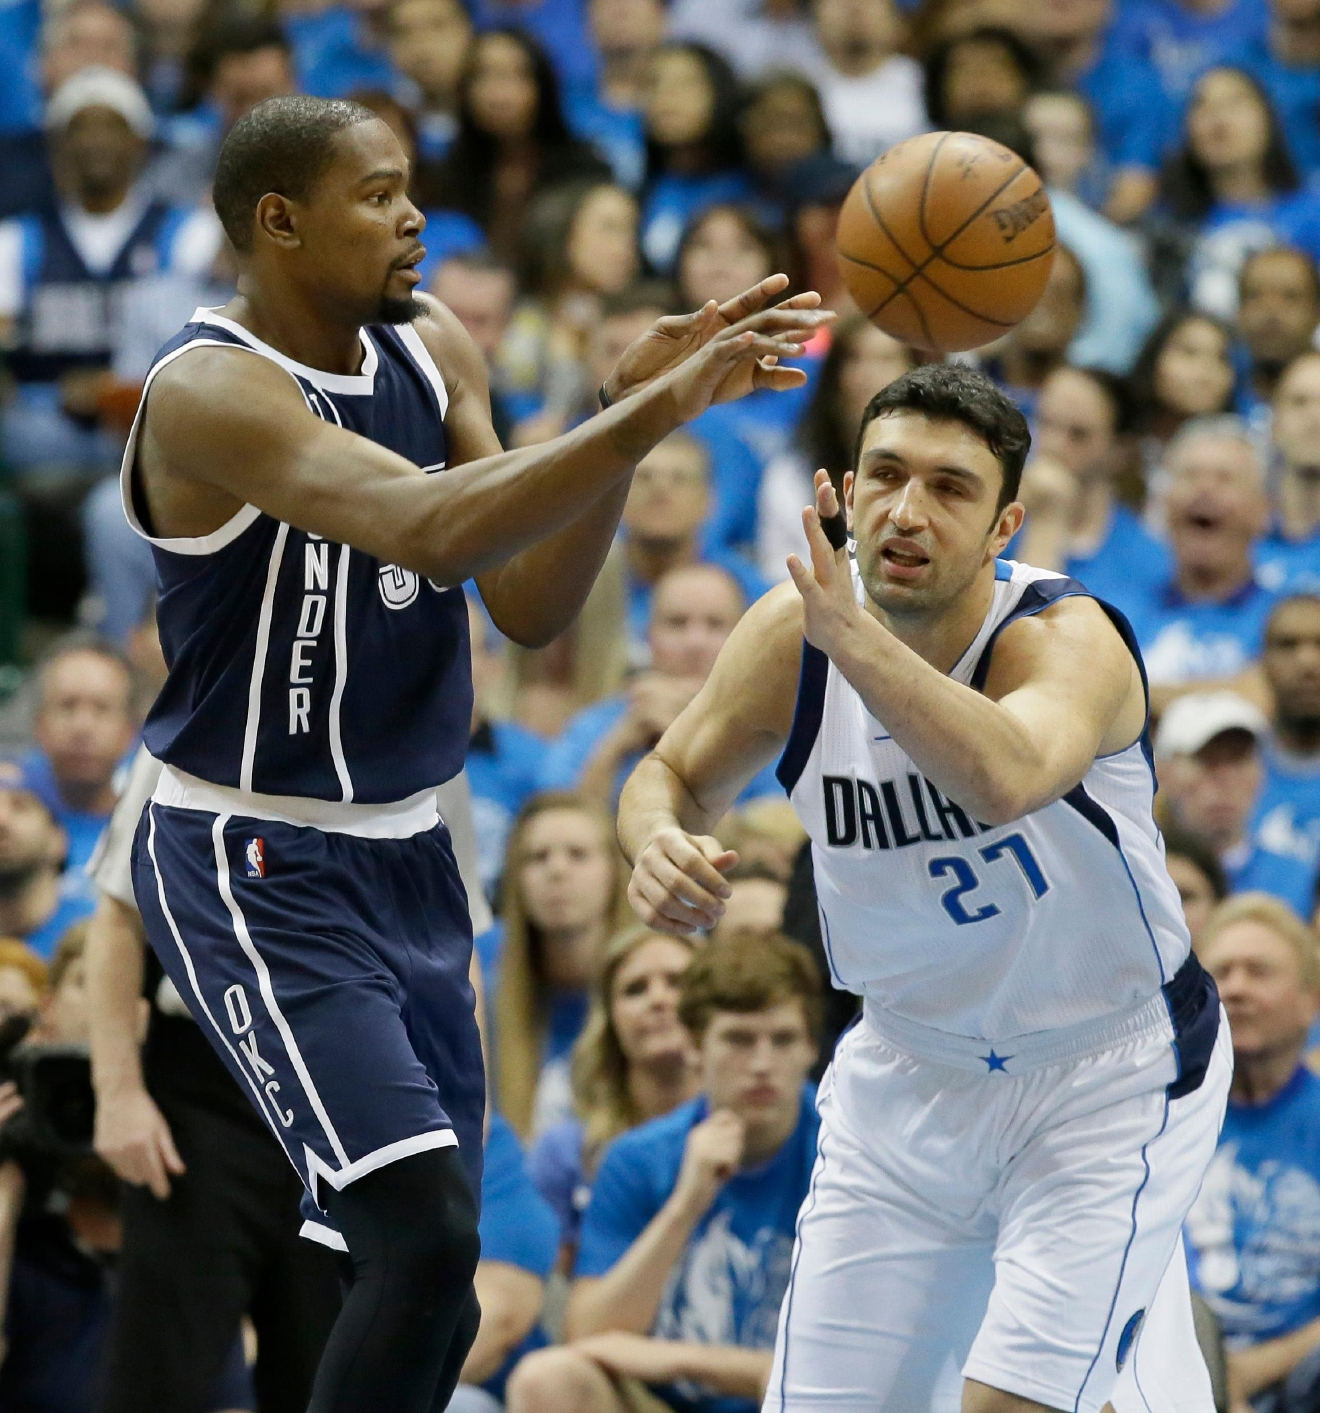 Oklahoma City Thunder forward Kevin Durant (35) passes the ball past Dallas Mavericks center Zaza Pachulia (27) during the first half in Game 3 of a first-round NBA basketball playoff series Thursday, April 21, 2016, in Dallas. (AP Photo/LM Otero)